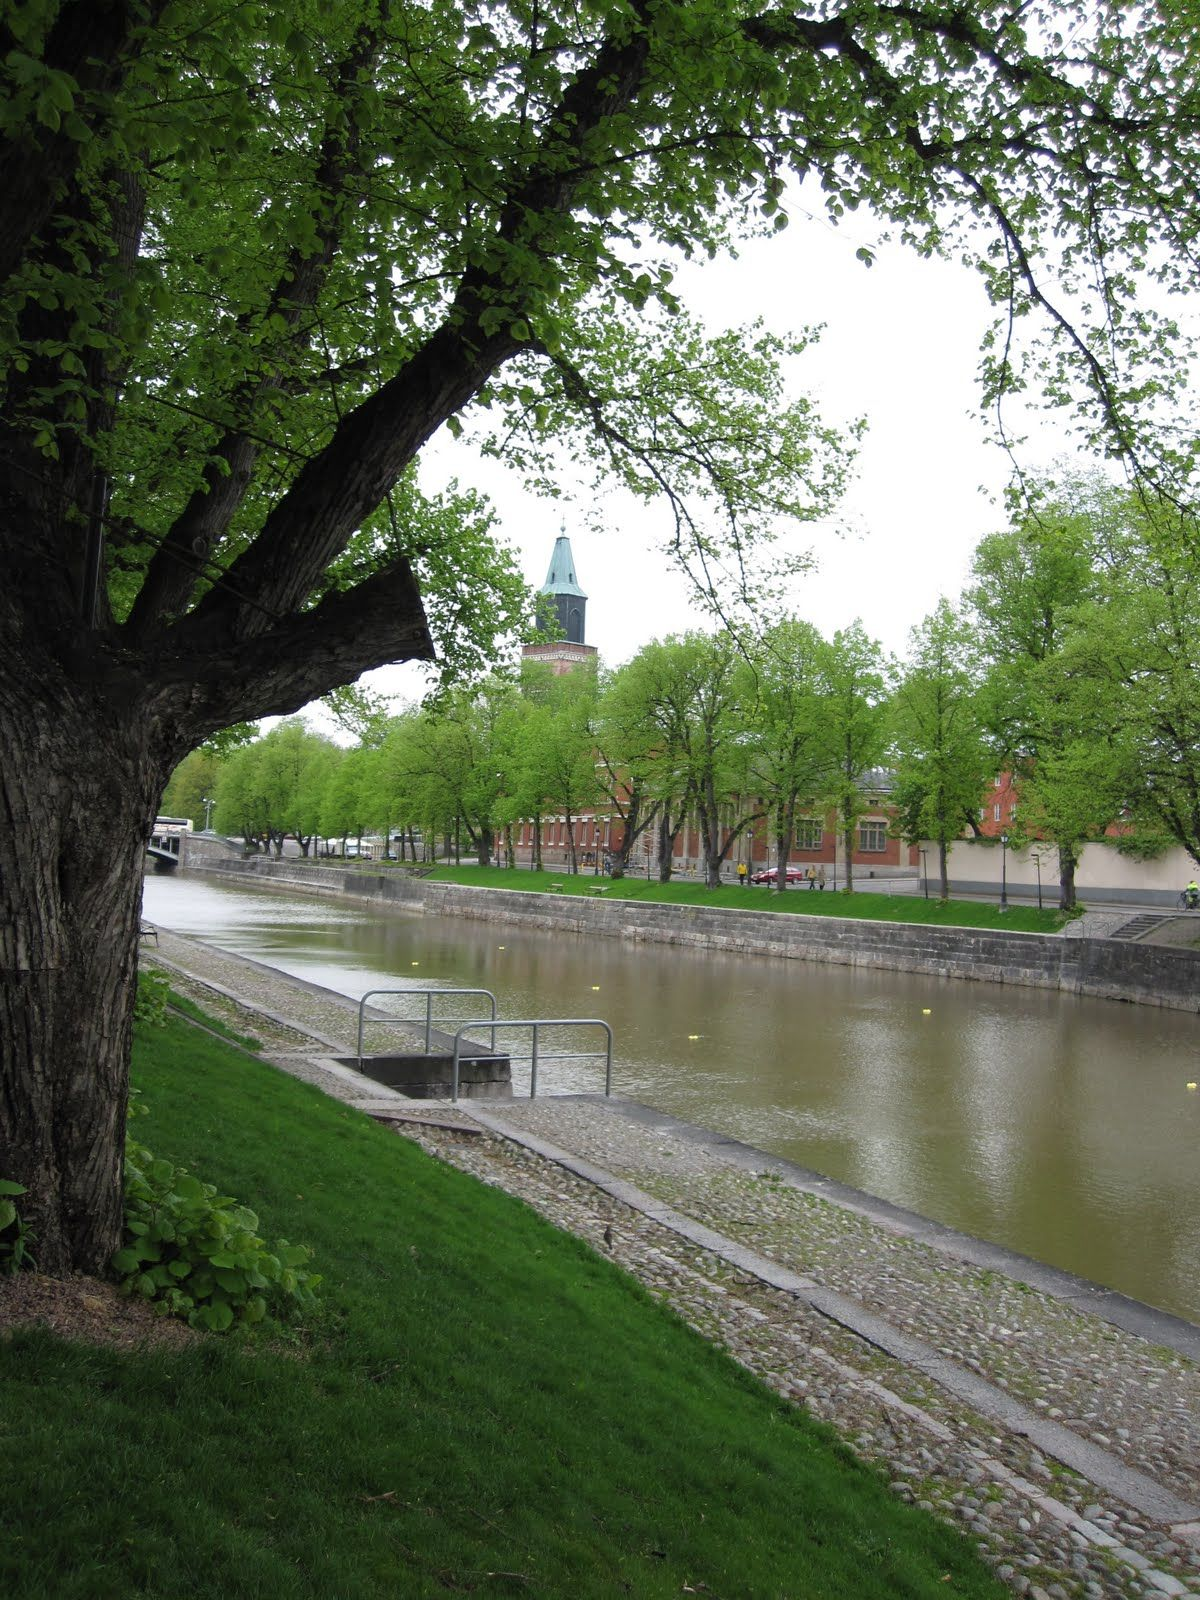 Turku Finland I Will Be There In 3 Weeks